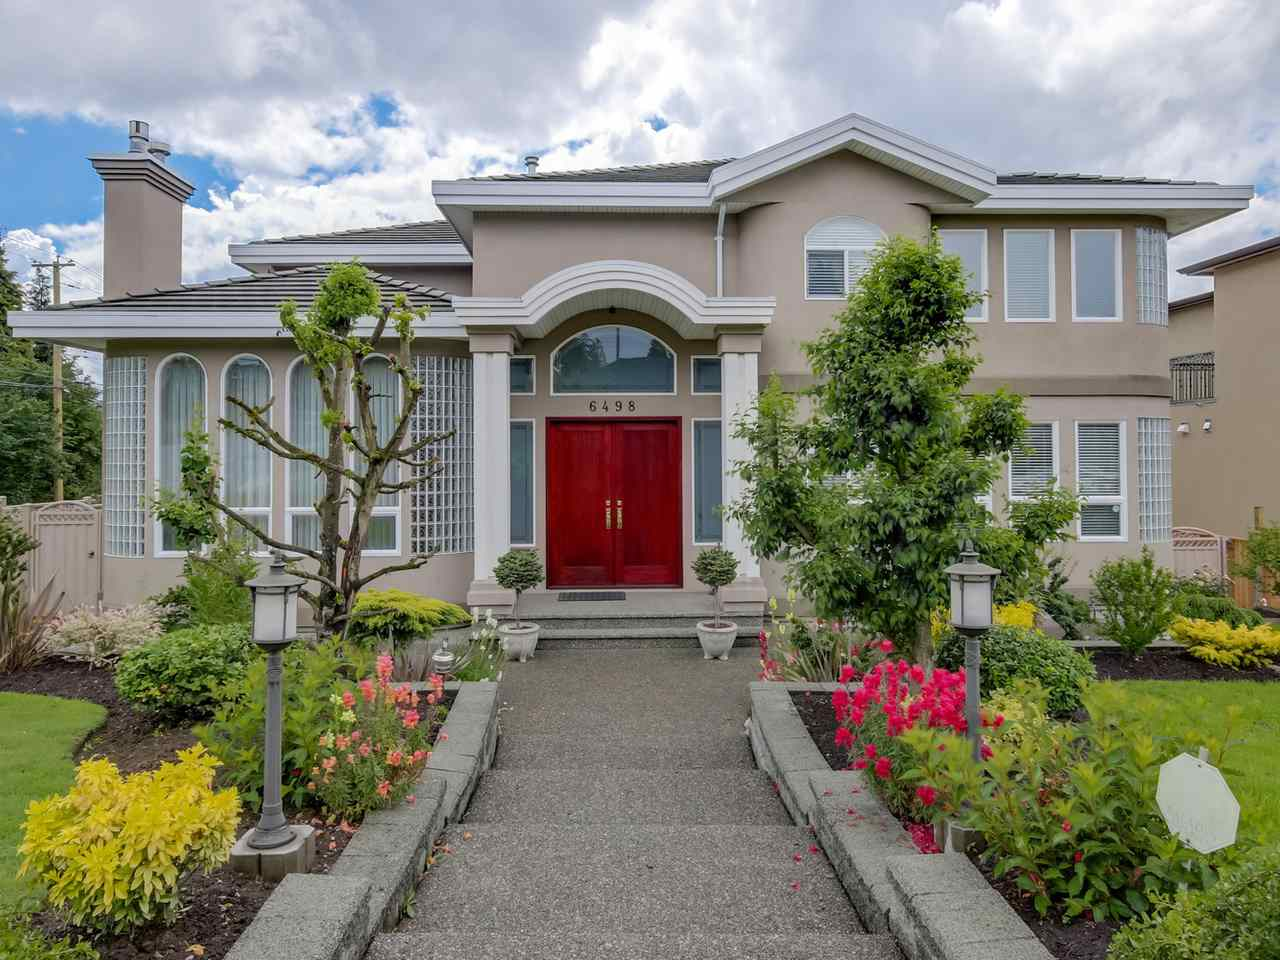 Main Photo: 6498 BUCHANAN Street in Burnaby: Parkcrest House for sale (Burnaby North)  : MLS® # R2156910